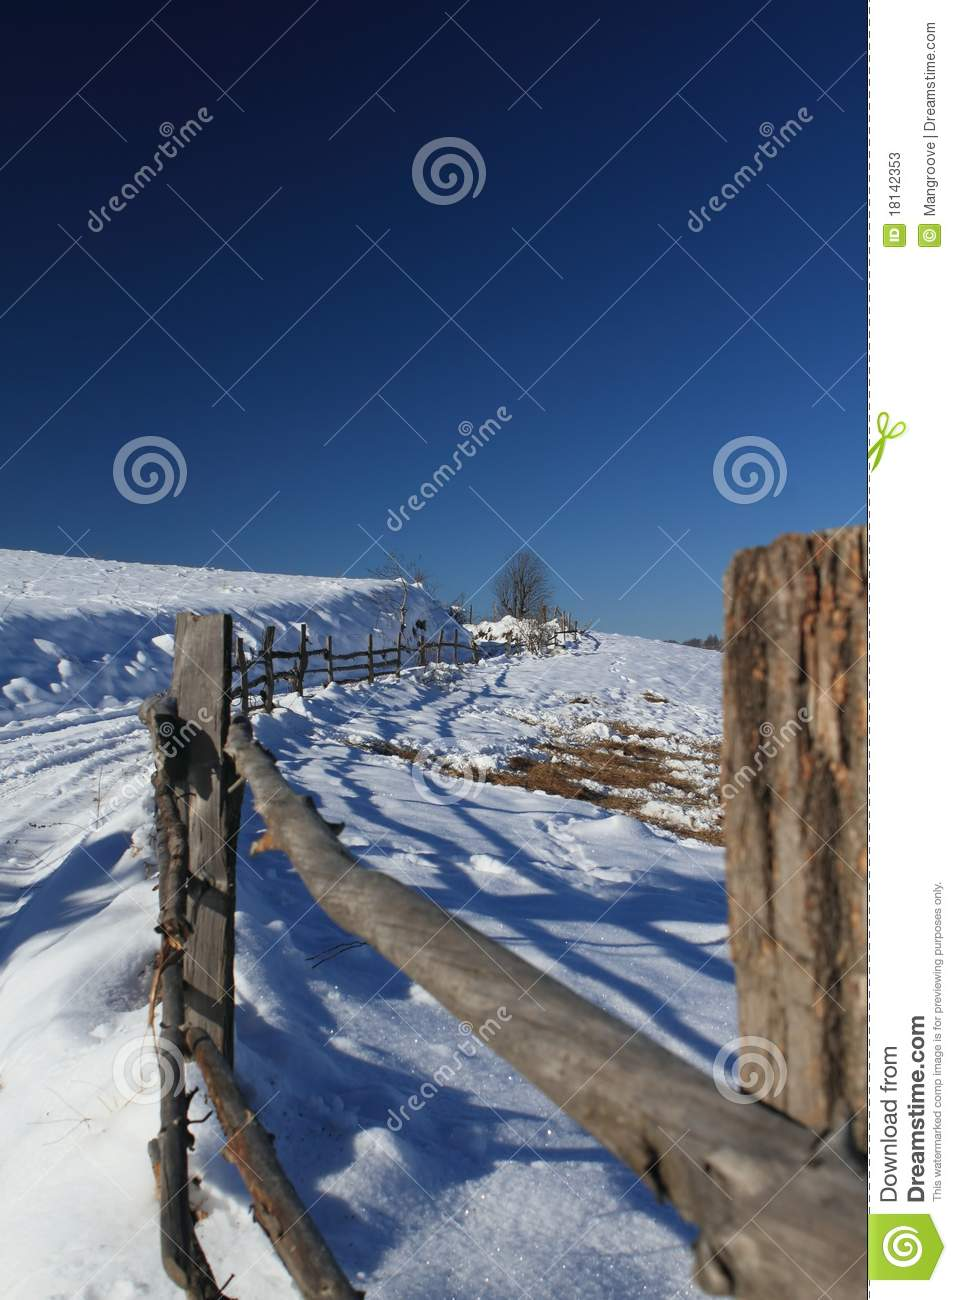 Mountain path and fence in winter